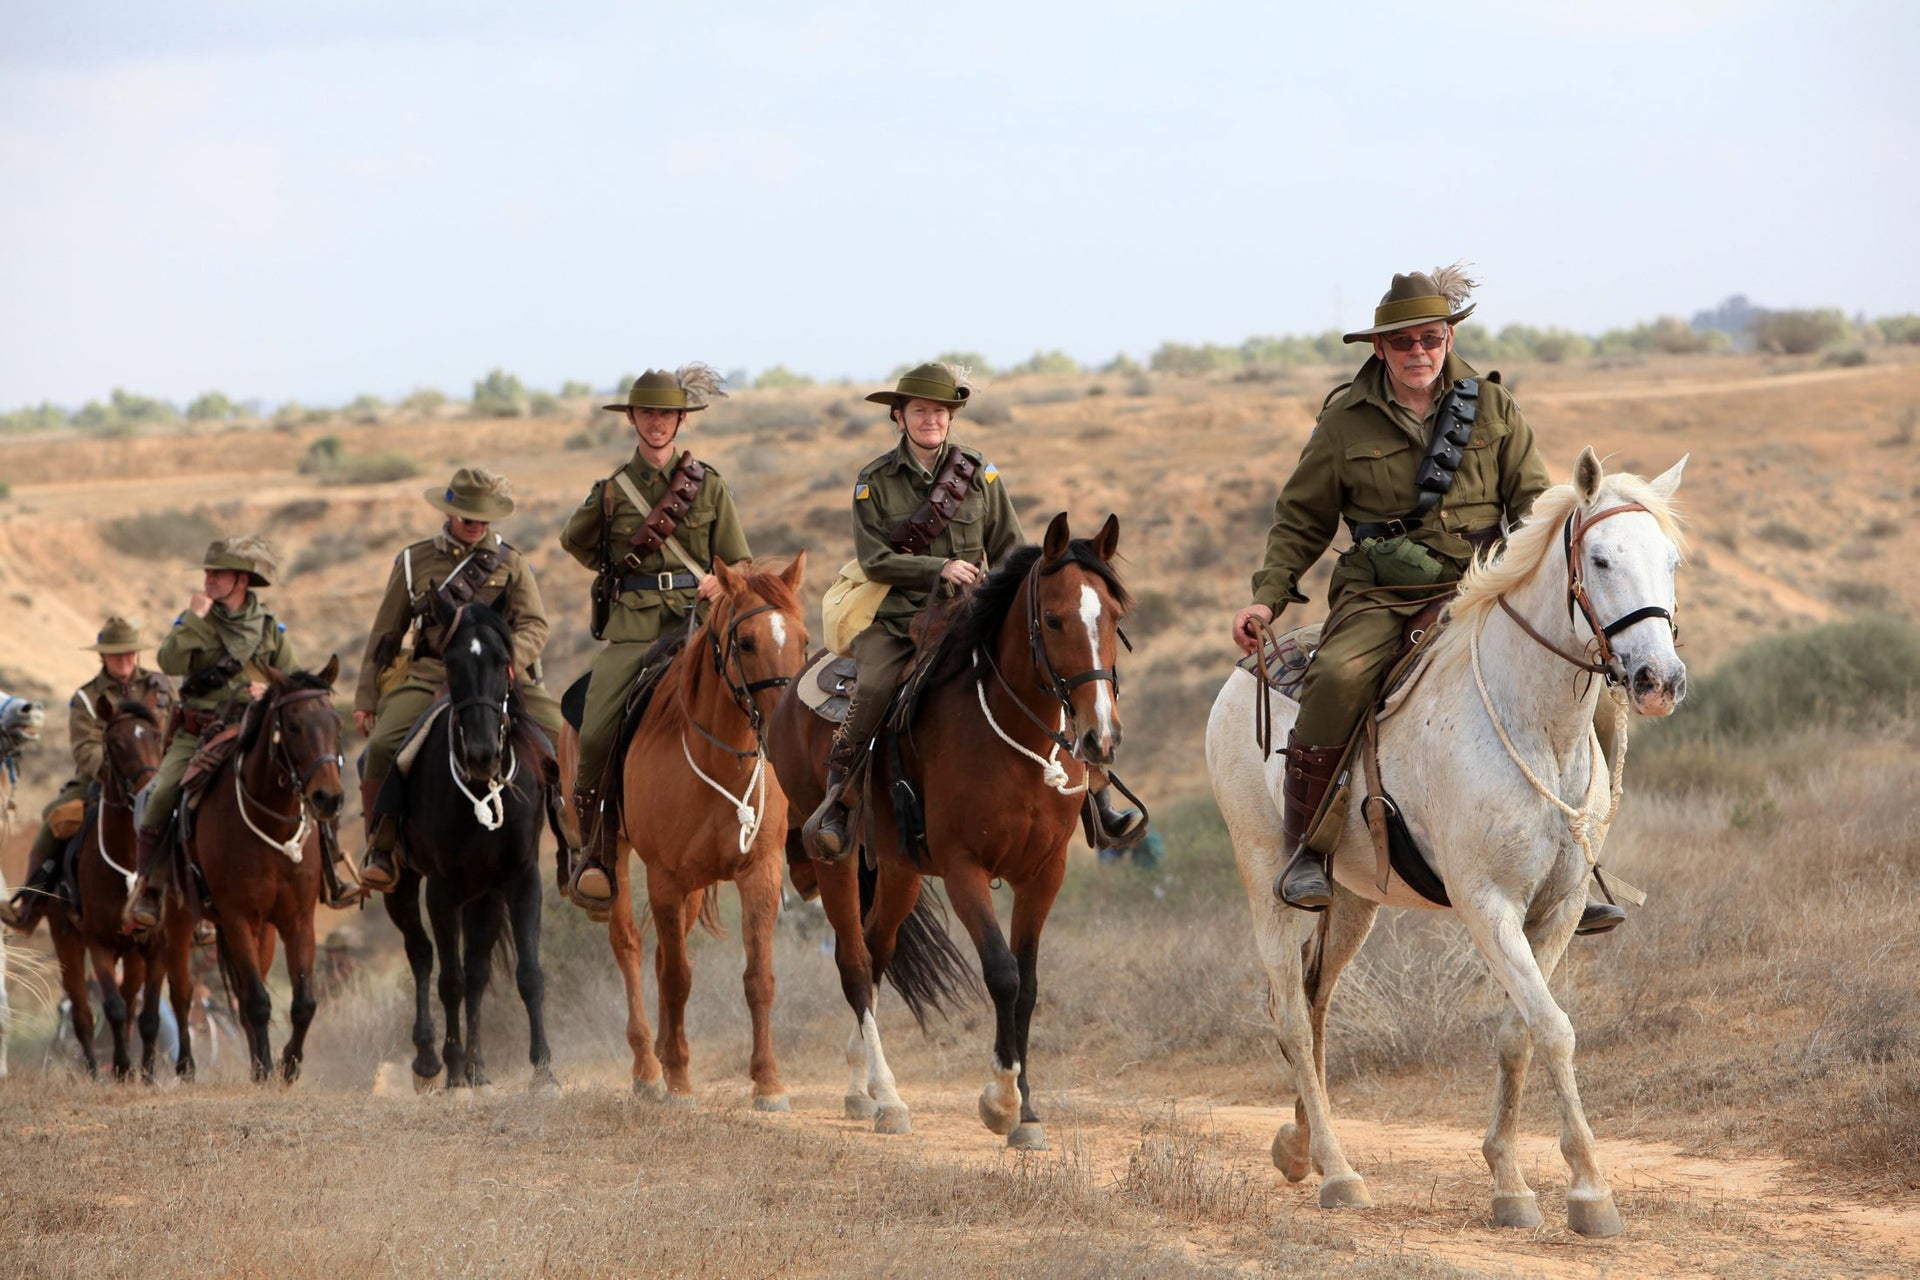 """""""The Battle of Be'er Sheva"""": The descendants of soldiers from the Australian and New Zealand Army Corps (ANZAC), riding along the trail that their ancestors took to Be'er Sheva to fight the Turks in World War One. October 29, 2017."""